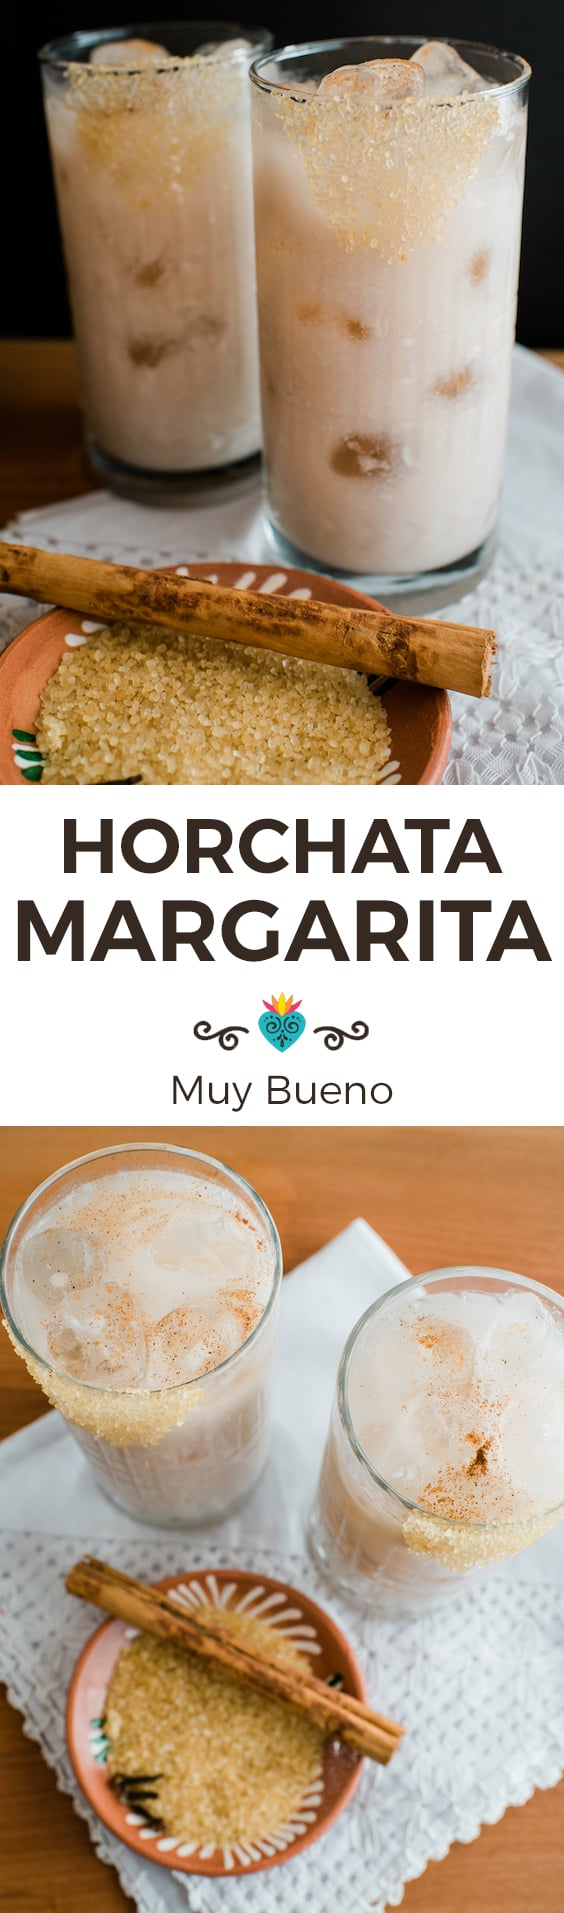 Horchata Magarita vertical collage with text overlay